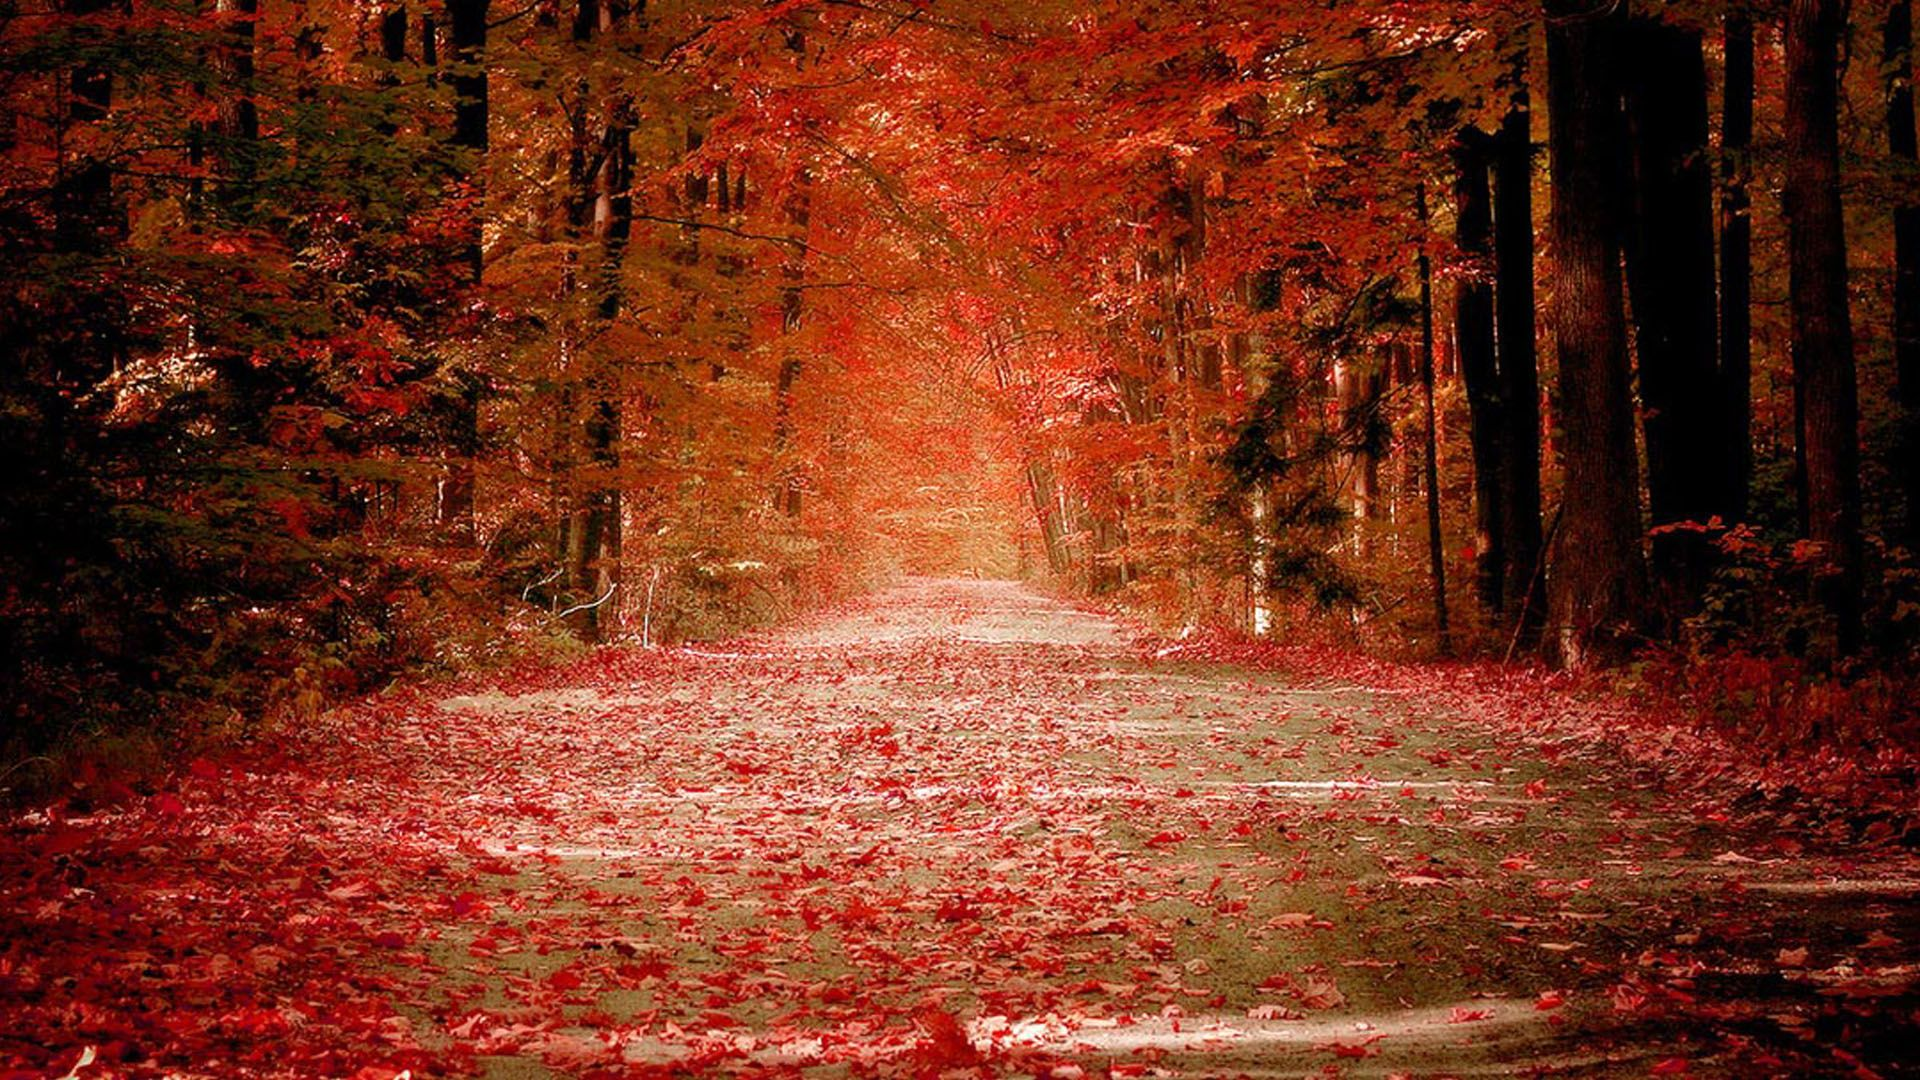 Nature Red Fall Wallpaper wallpapers Pinterest Fall